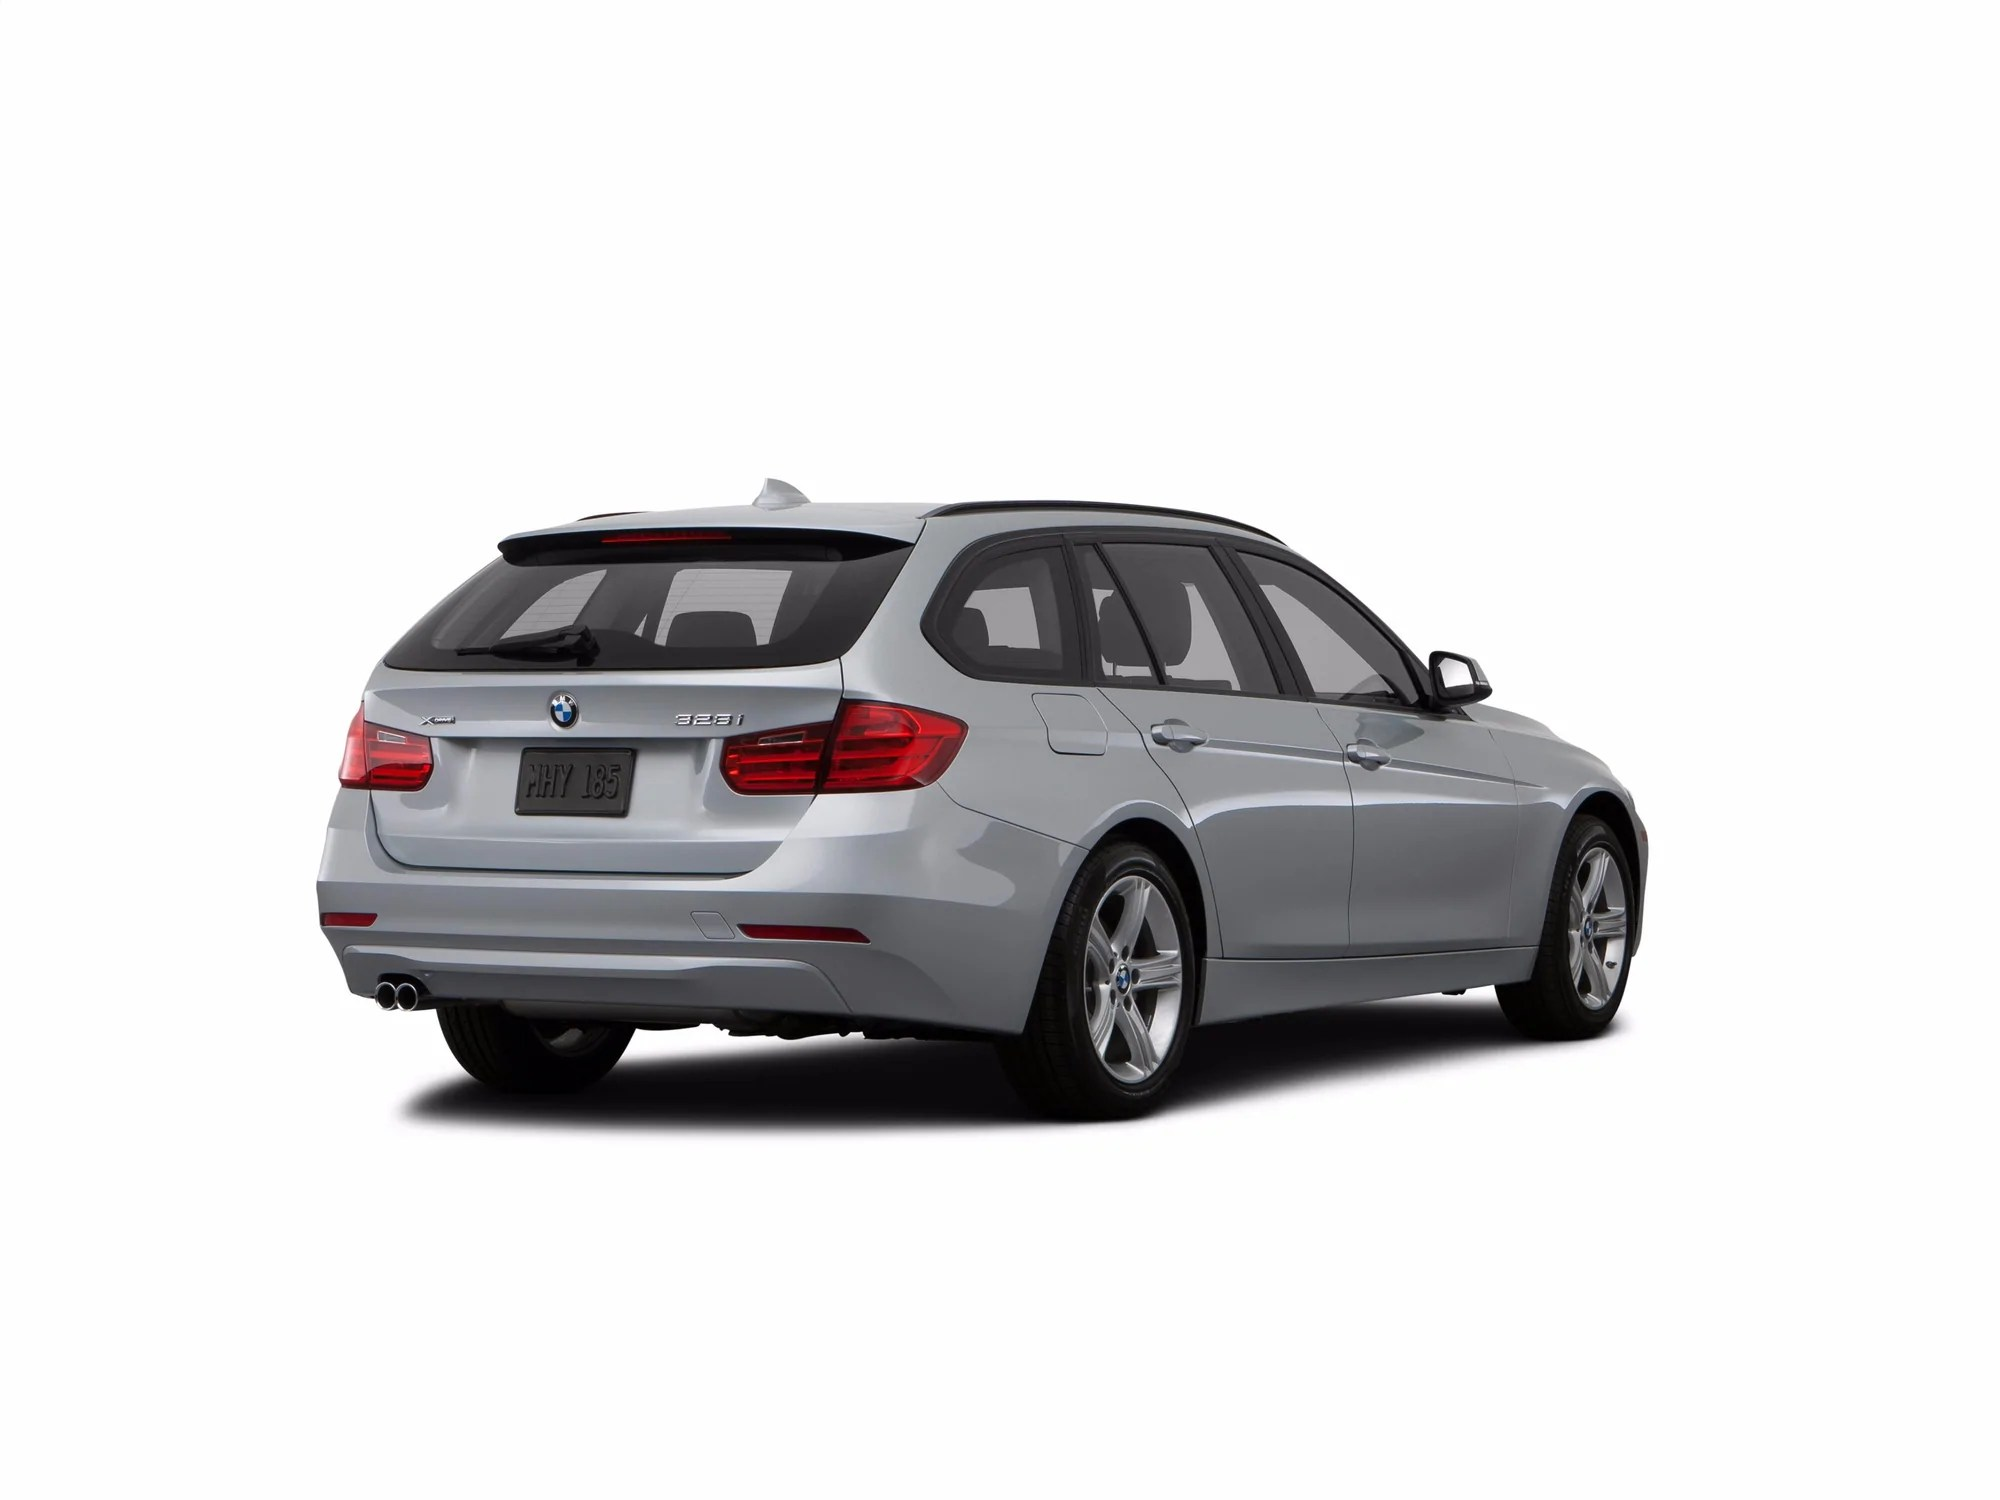 medium resolution of bmw 3 series hitch made to be hidden tailored trailer hitch for bmw 3 series